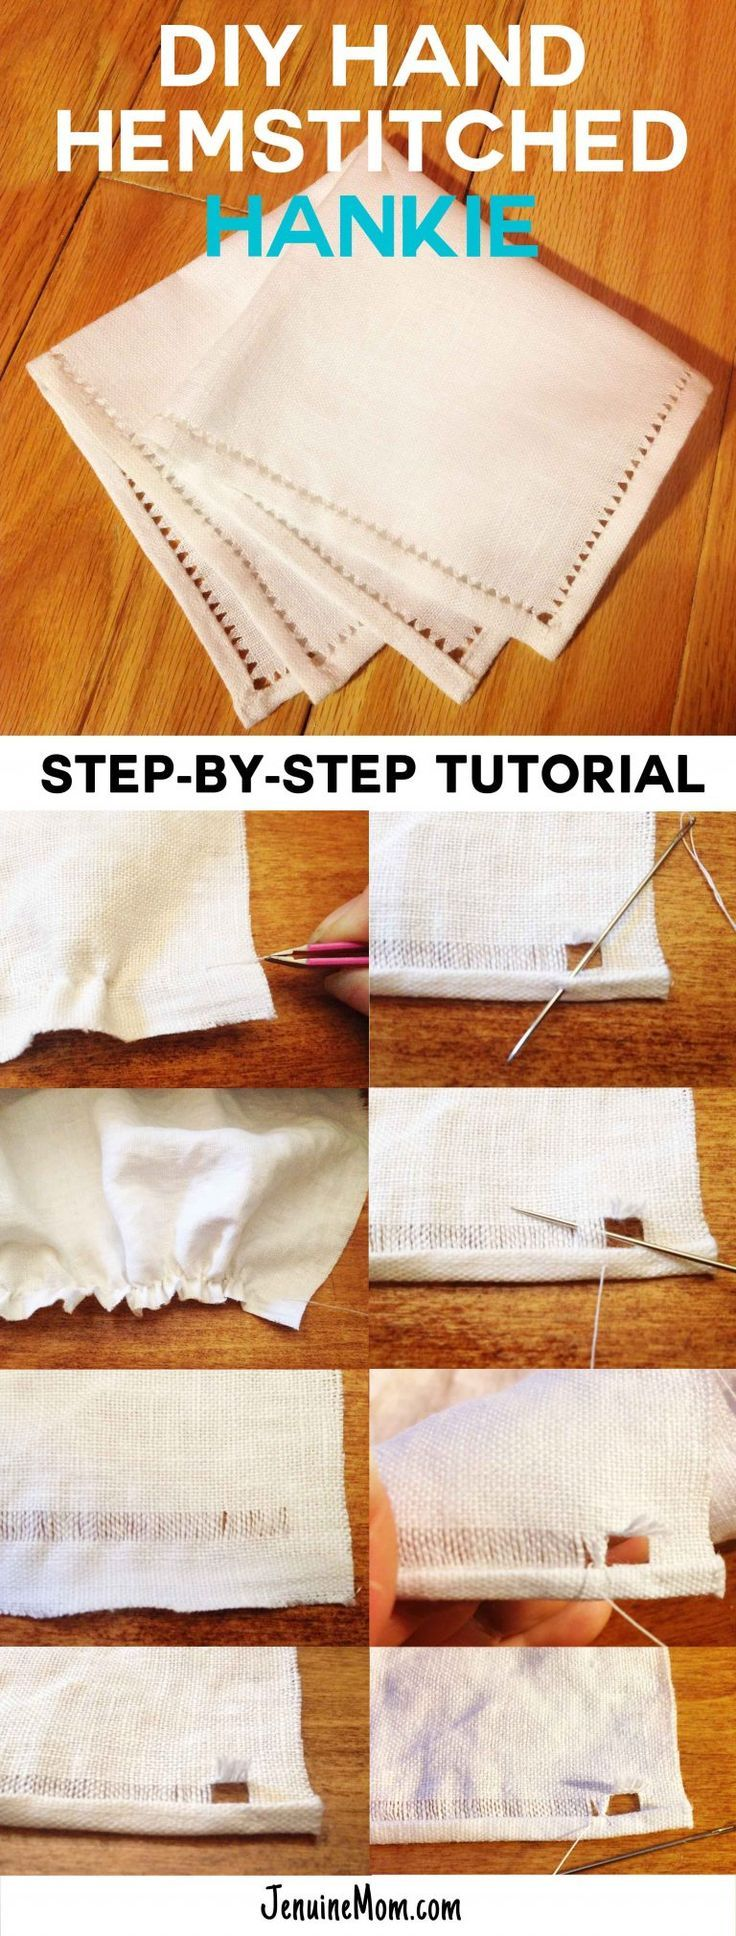 DIY Hand Hemstitched Handkerchief | Drawn Thread Work | JenuineMom.com